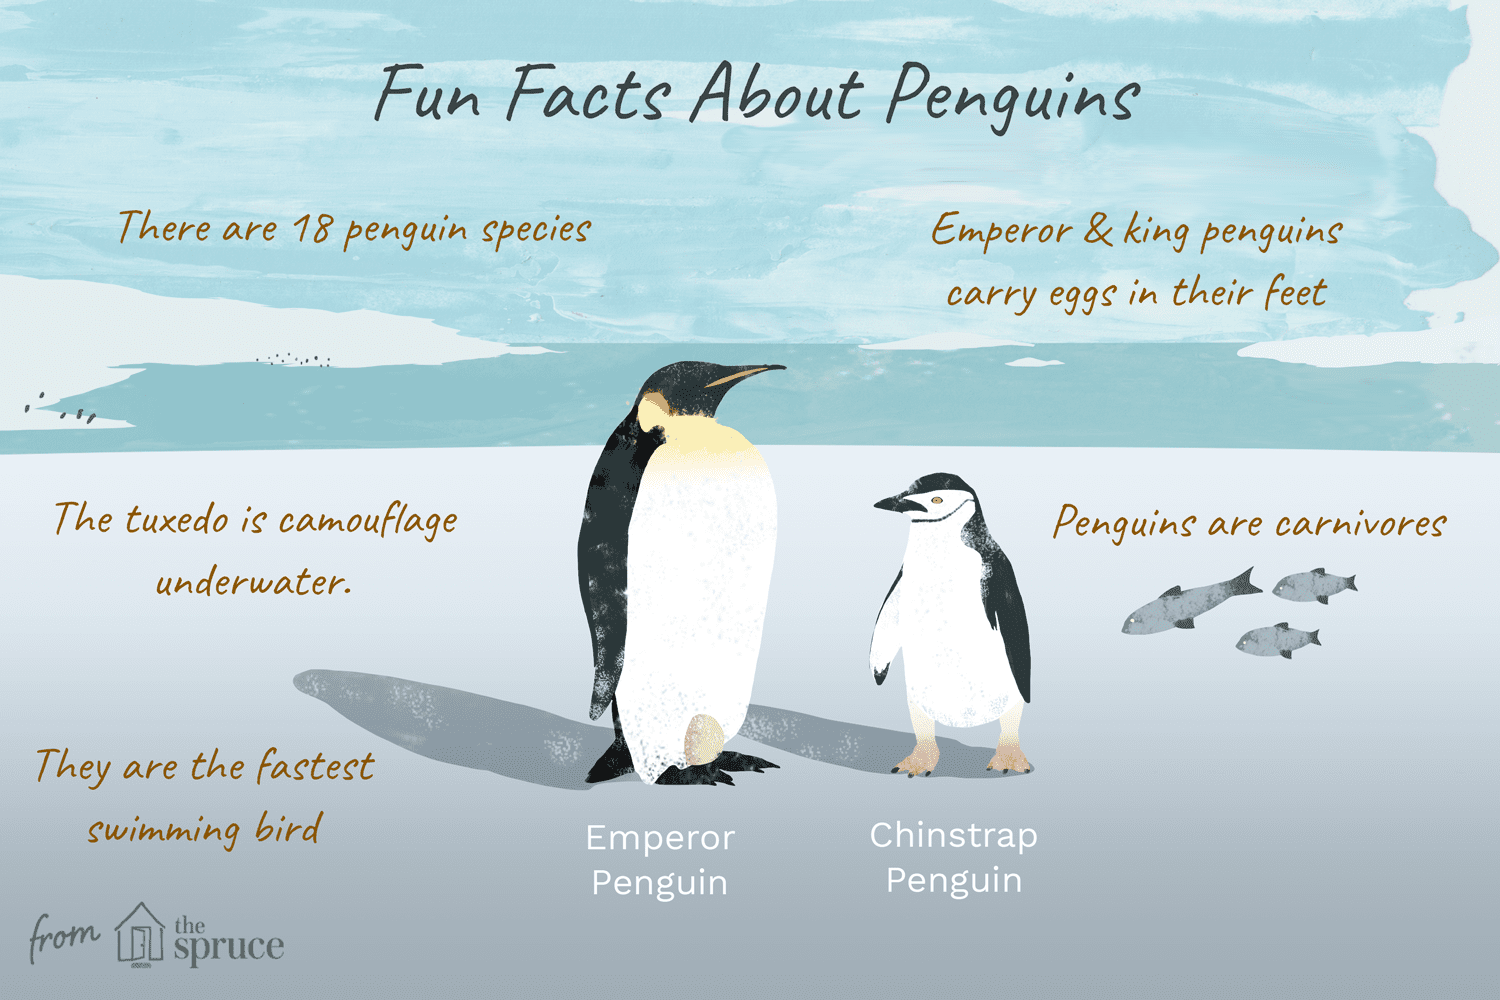 Fun Facts And Trivia About Penguins